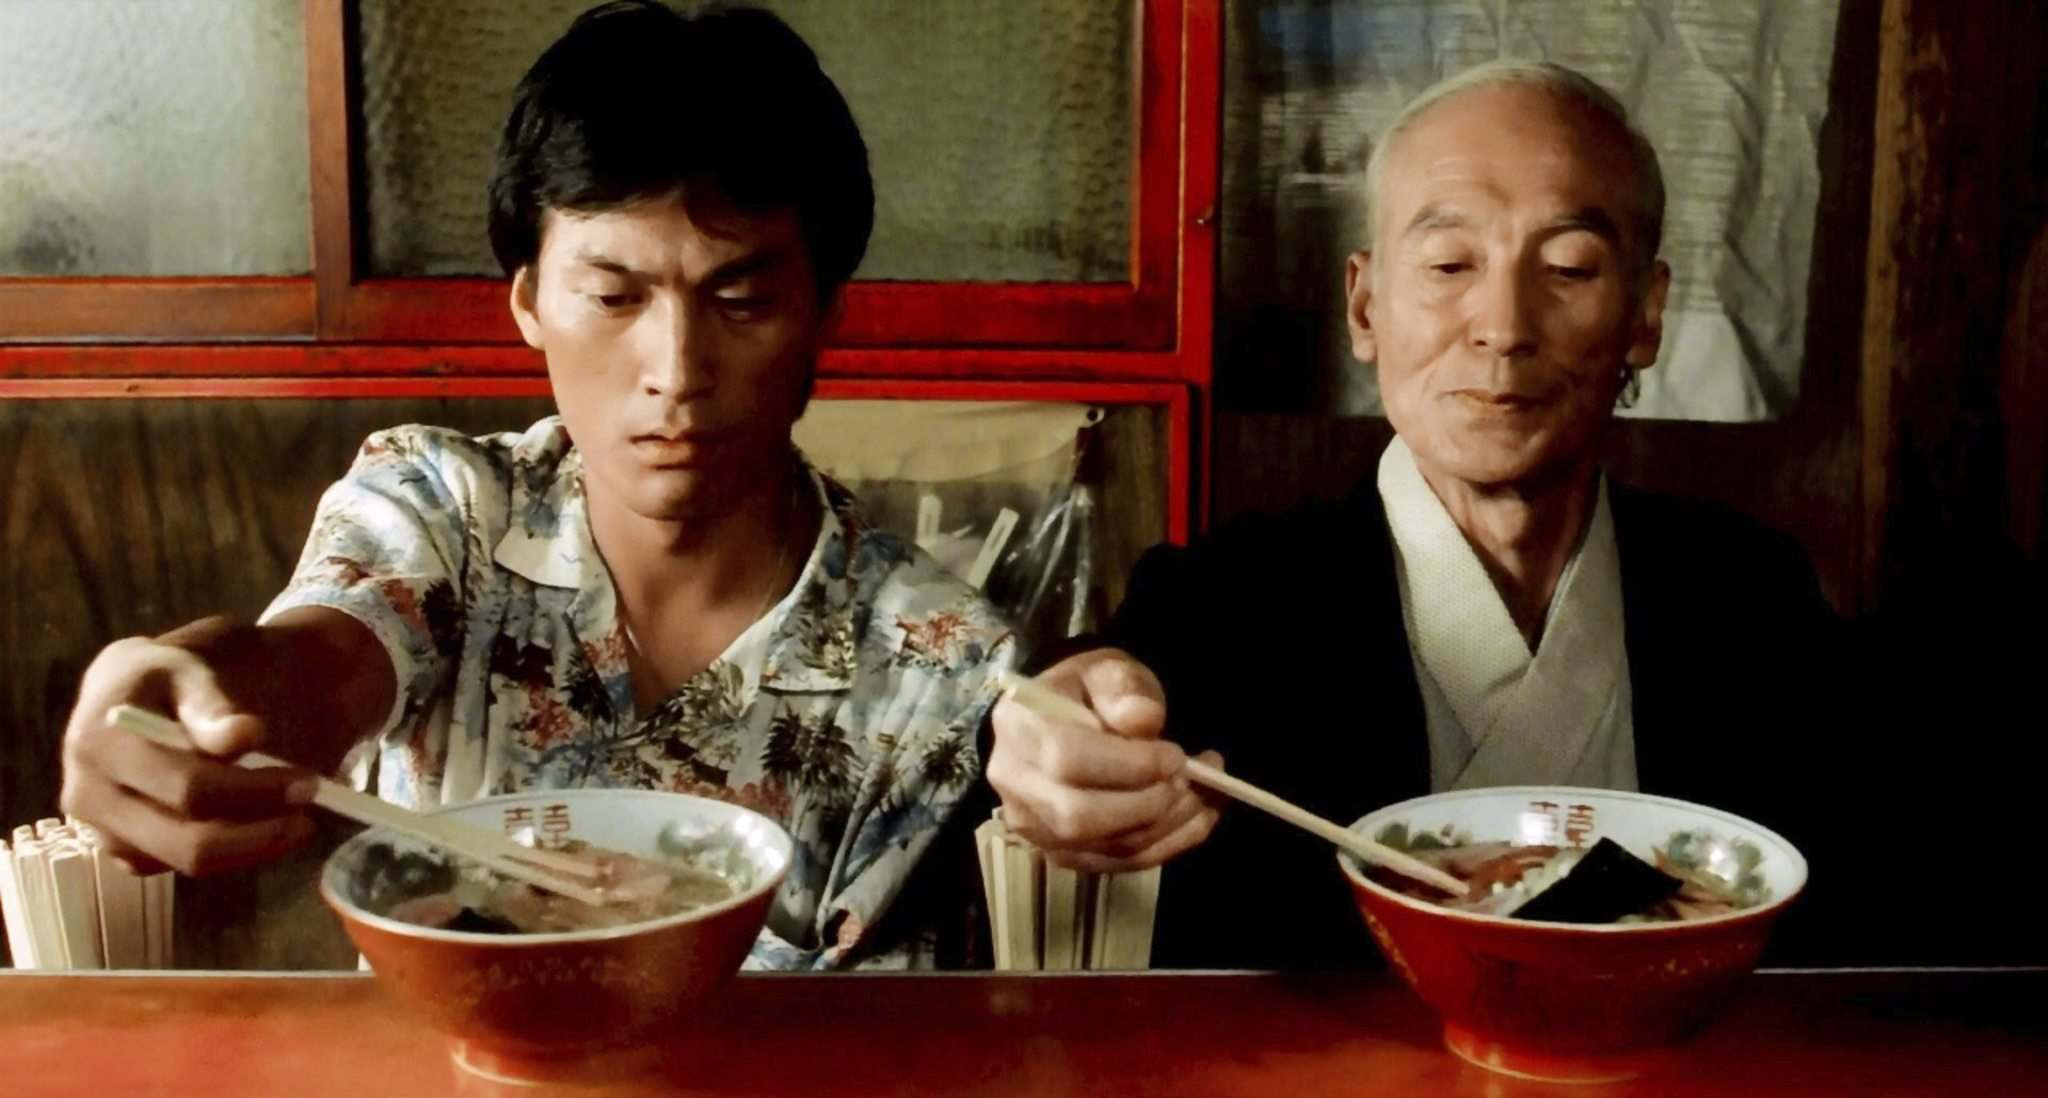 CINEMATHEQUE</p><p>Tampopo is about a pair of truck drivers who are determined to turn a so-so café into the best ramen restaurant in town.</p></p>